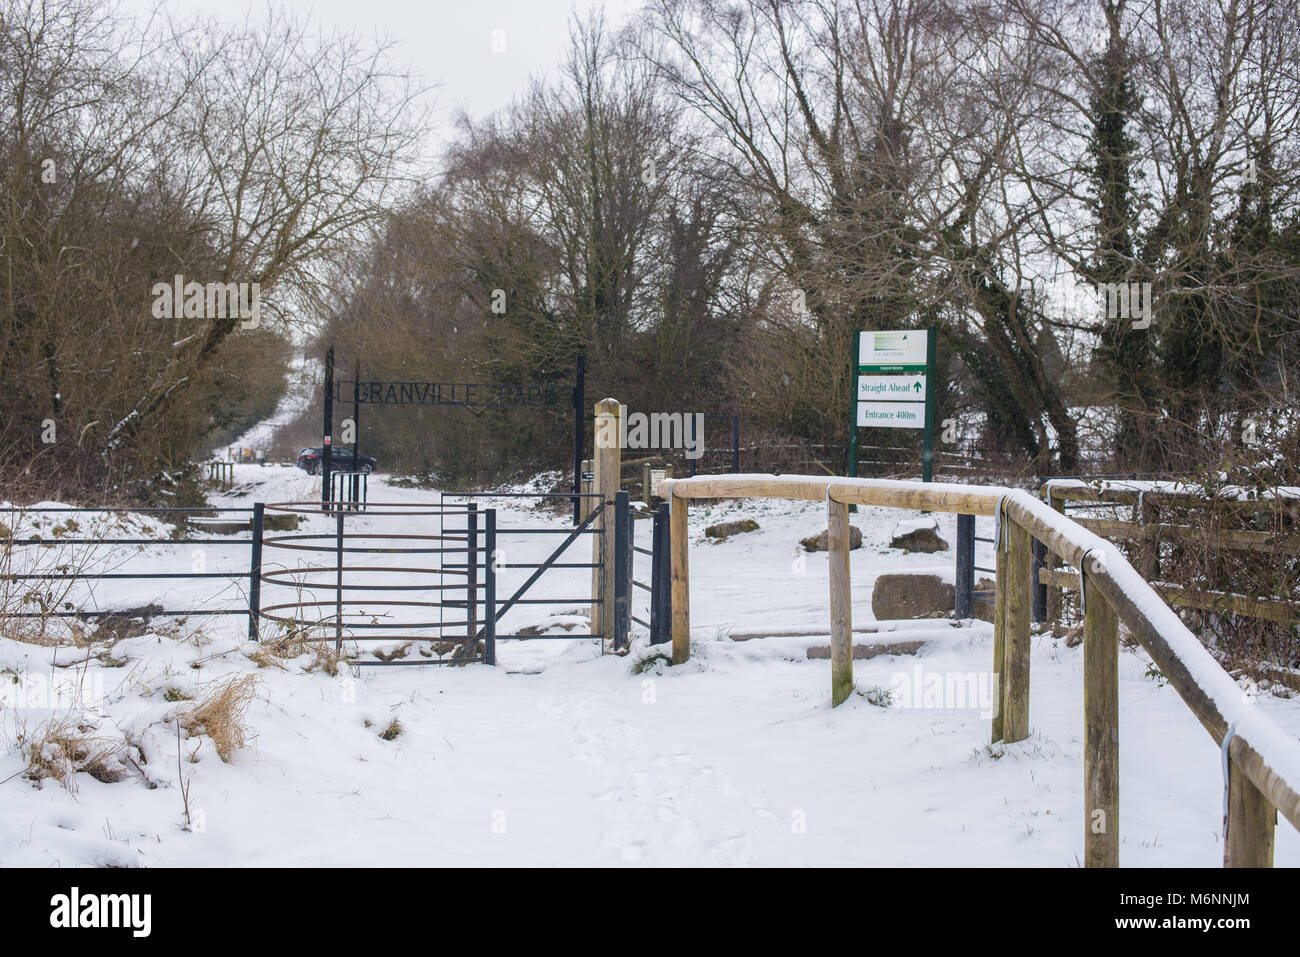 Snow Covered roads and pathways in the West Midlands town of Telford in Shropshire. Freezing temperatures and blankets - Stock Image